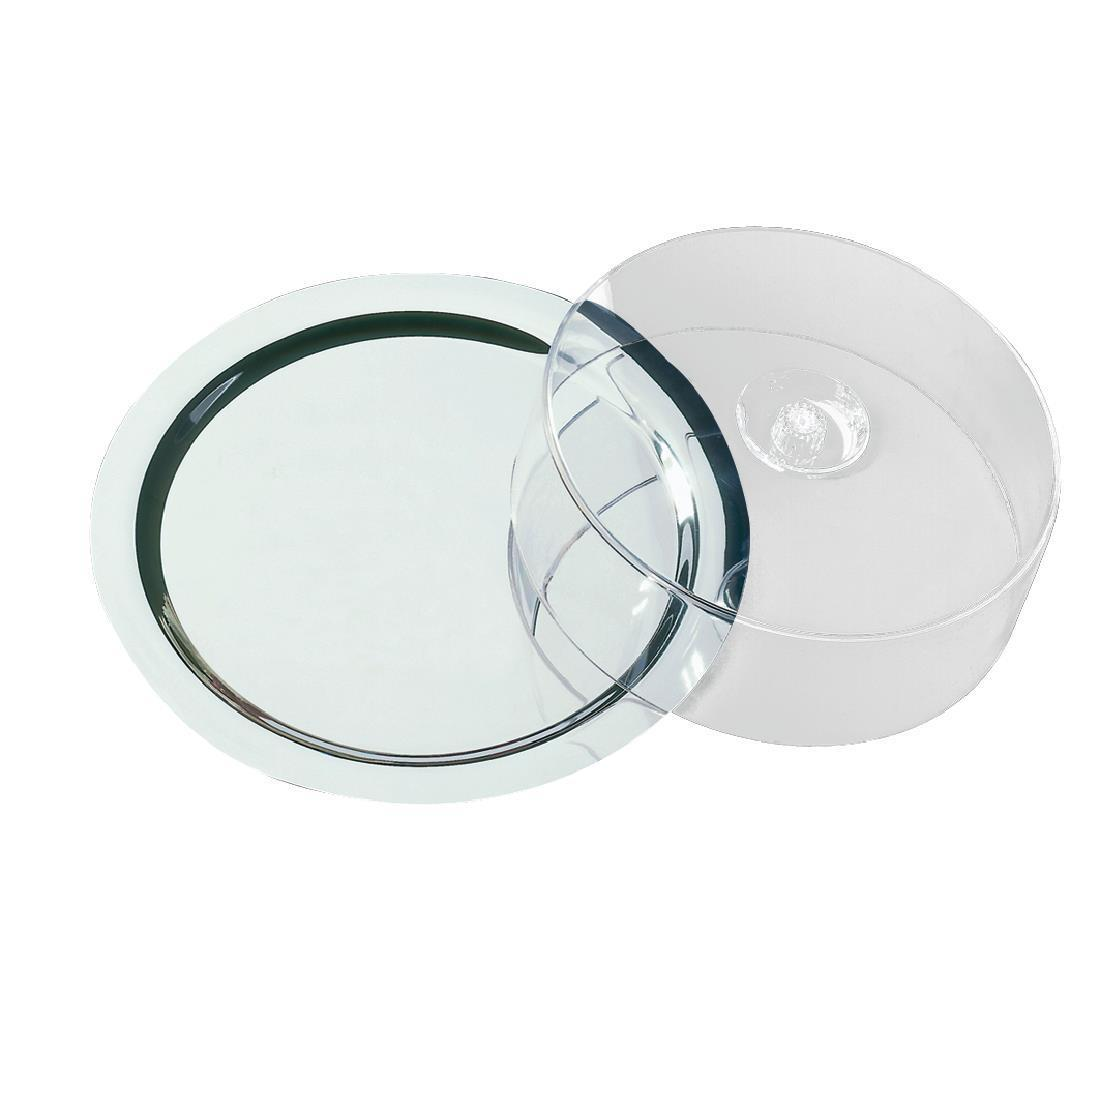 Round Tray With Cover - Each - F763